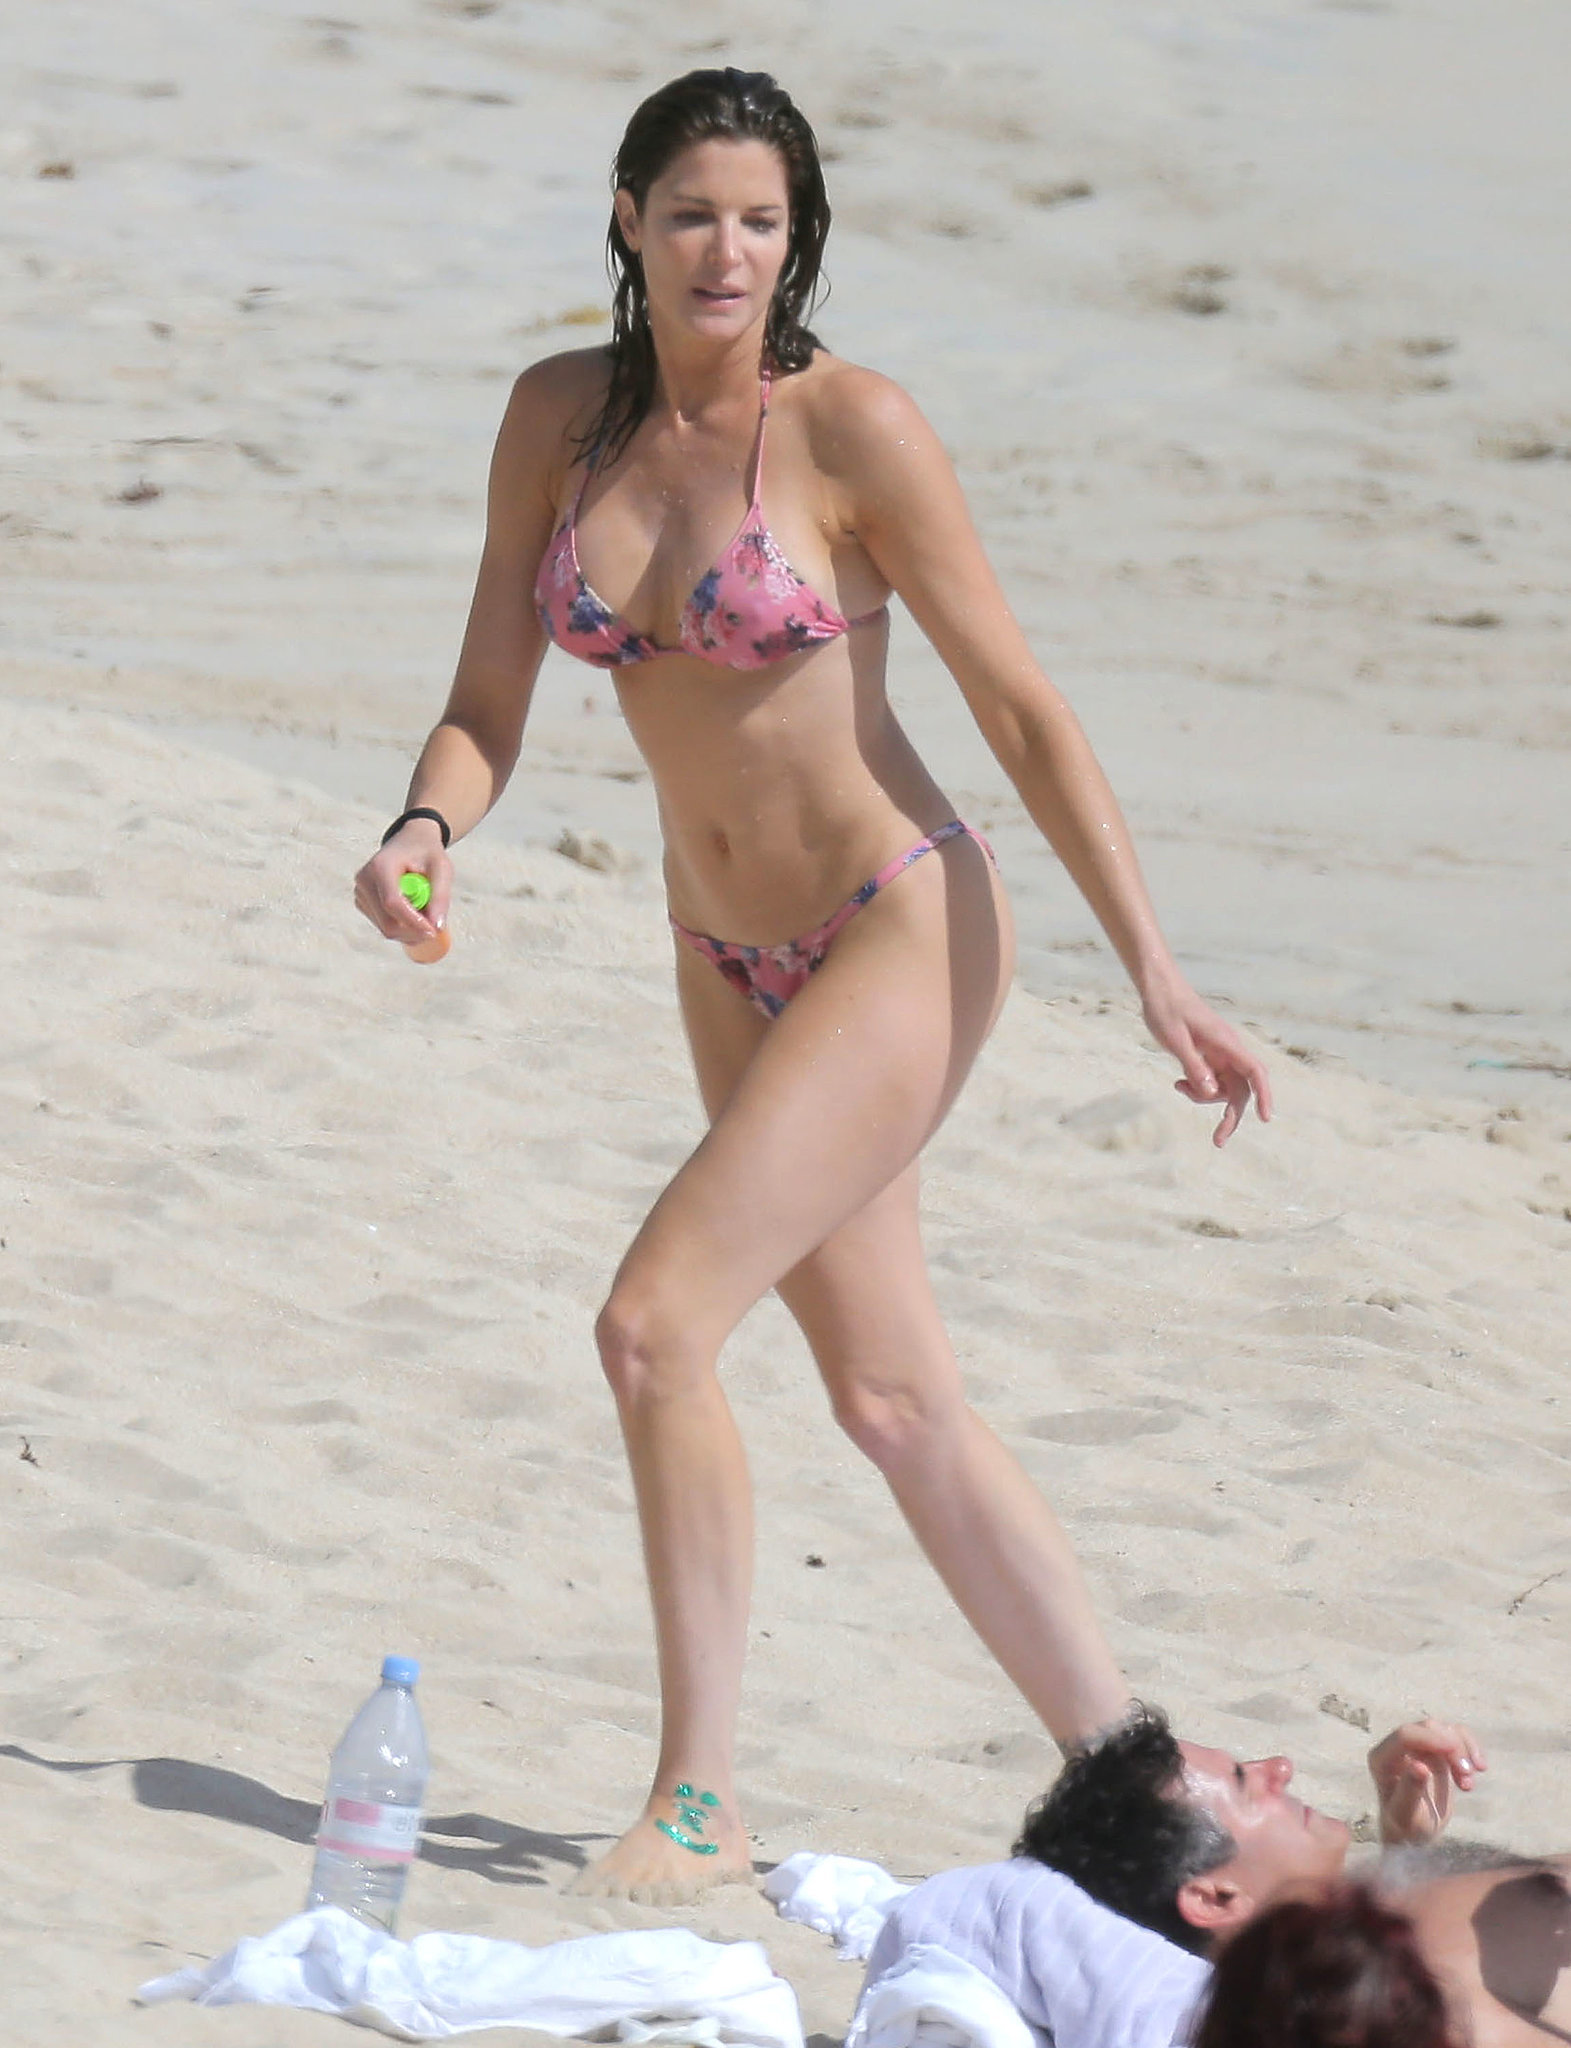 Stephanie Seymour showed off her bikini body in St. Barts in December 2013.